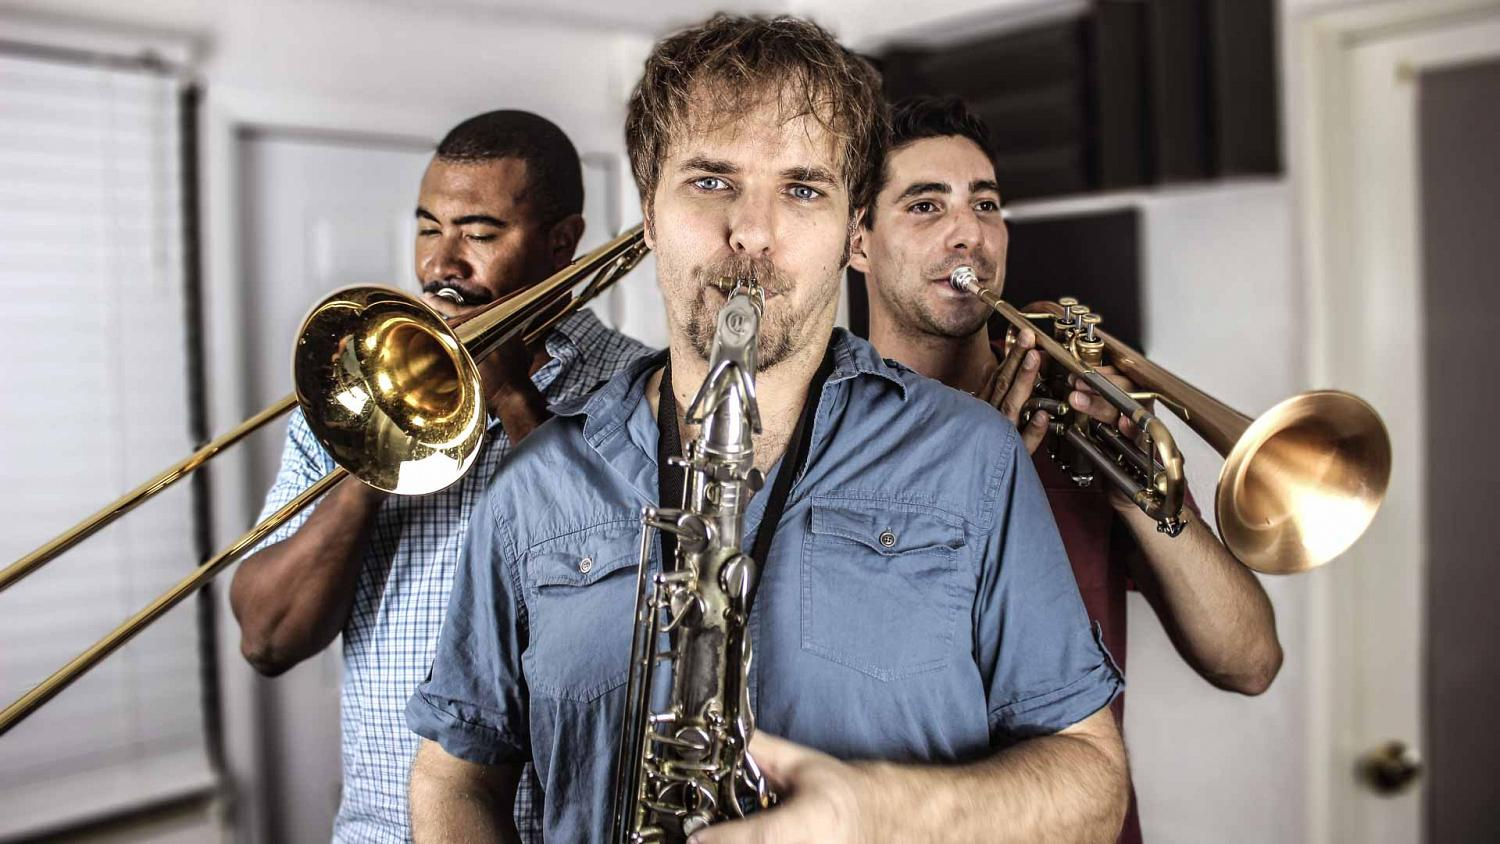 3-part horn section consisting of sax, trumpet and trombone which are available for online horn recordings